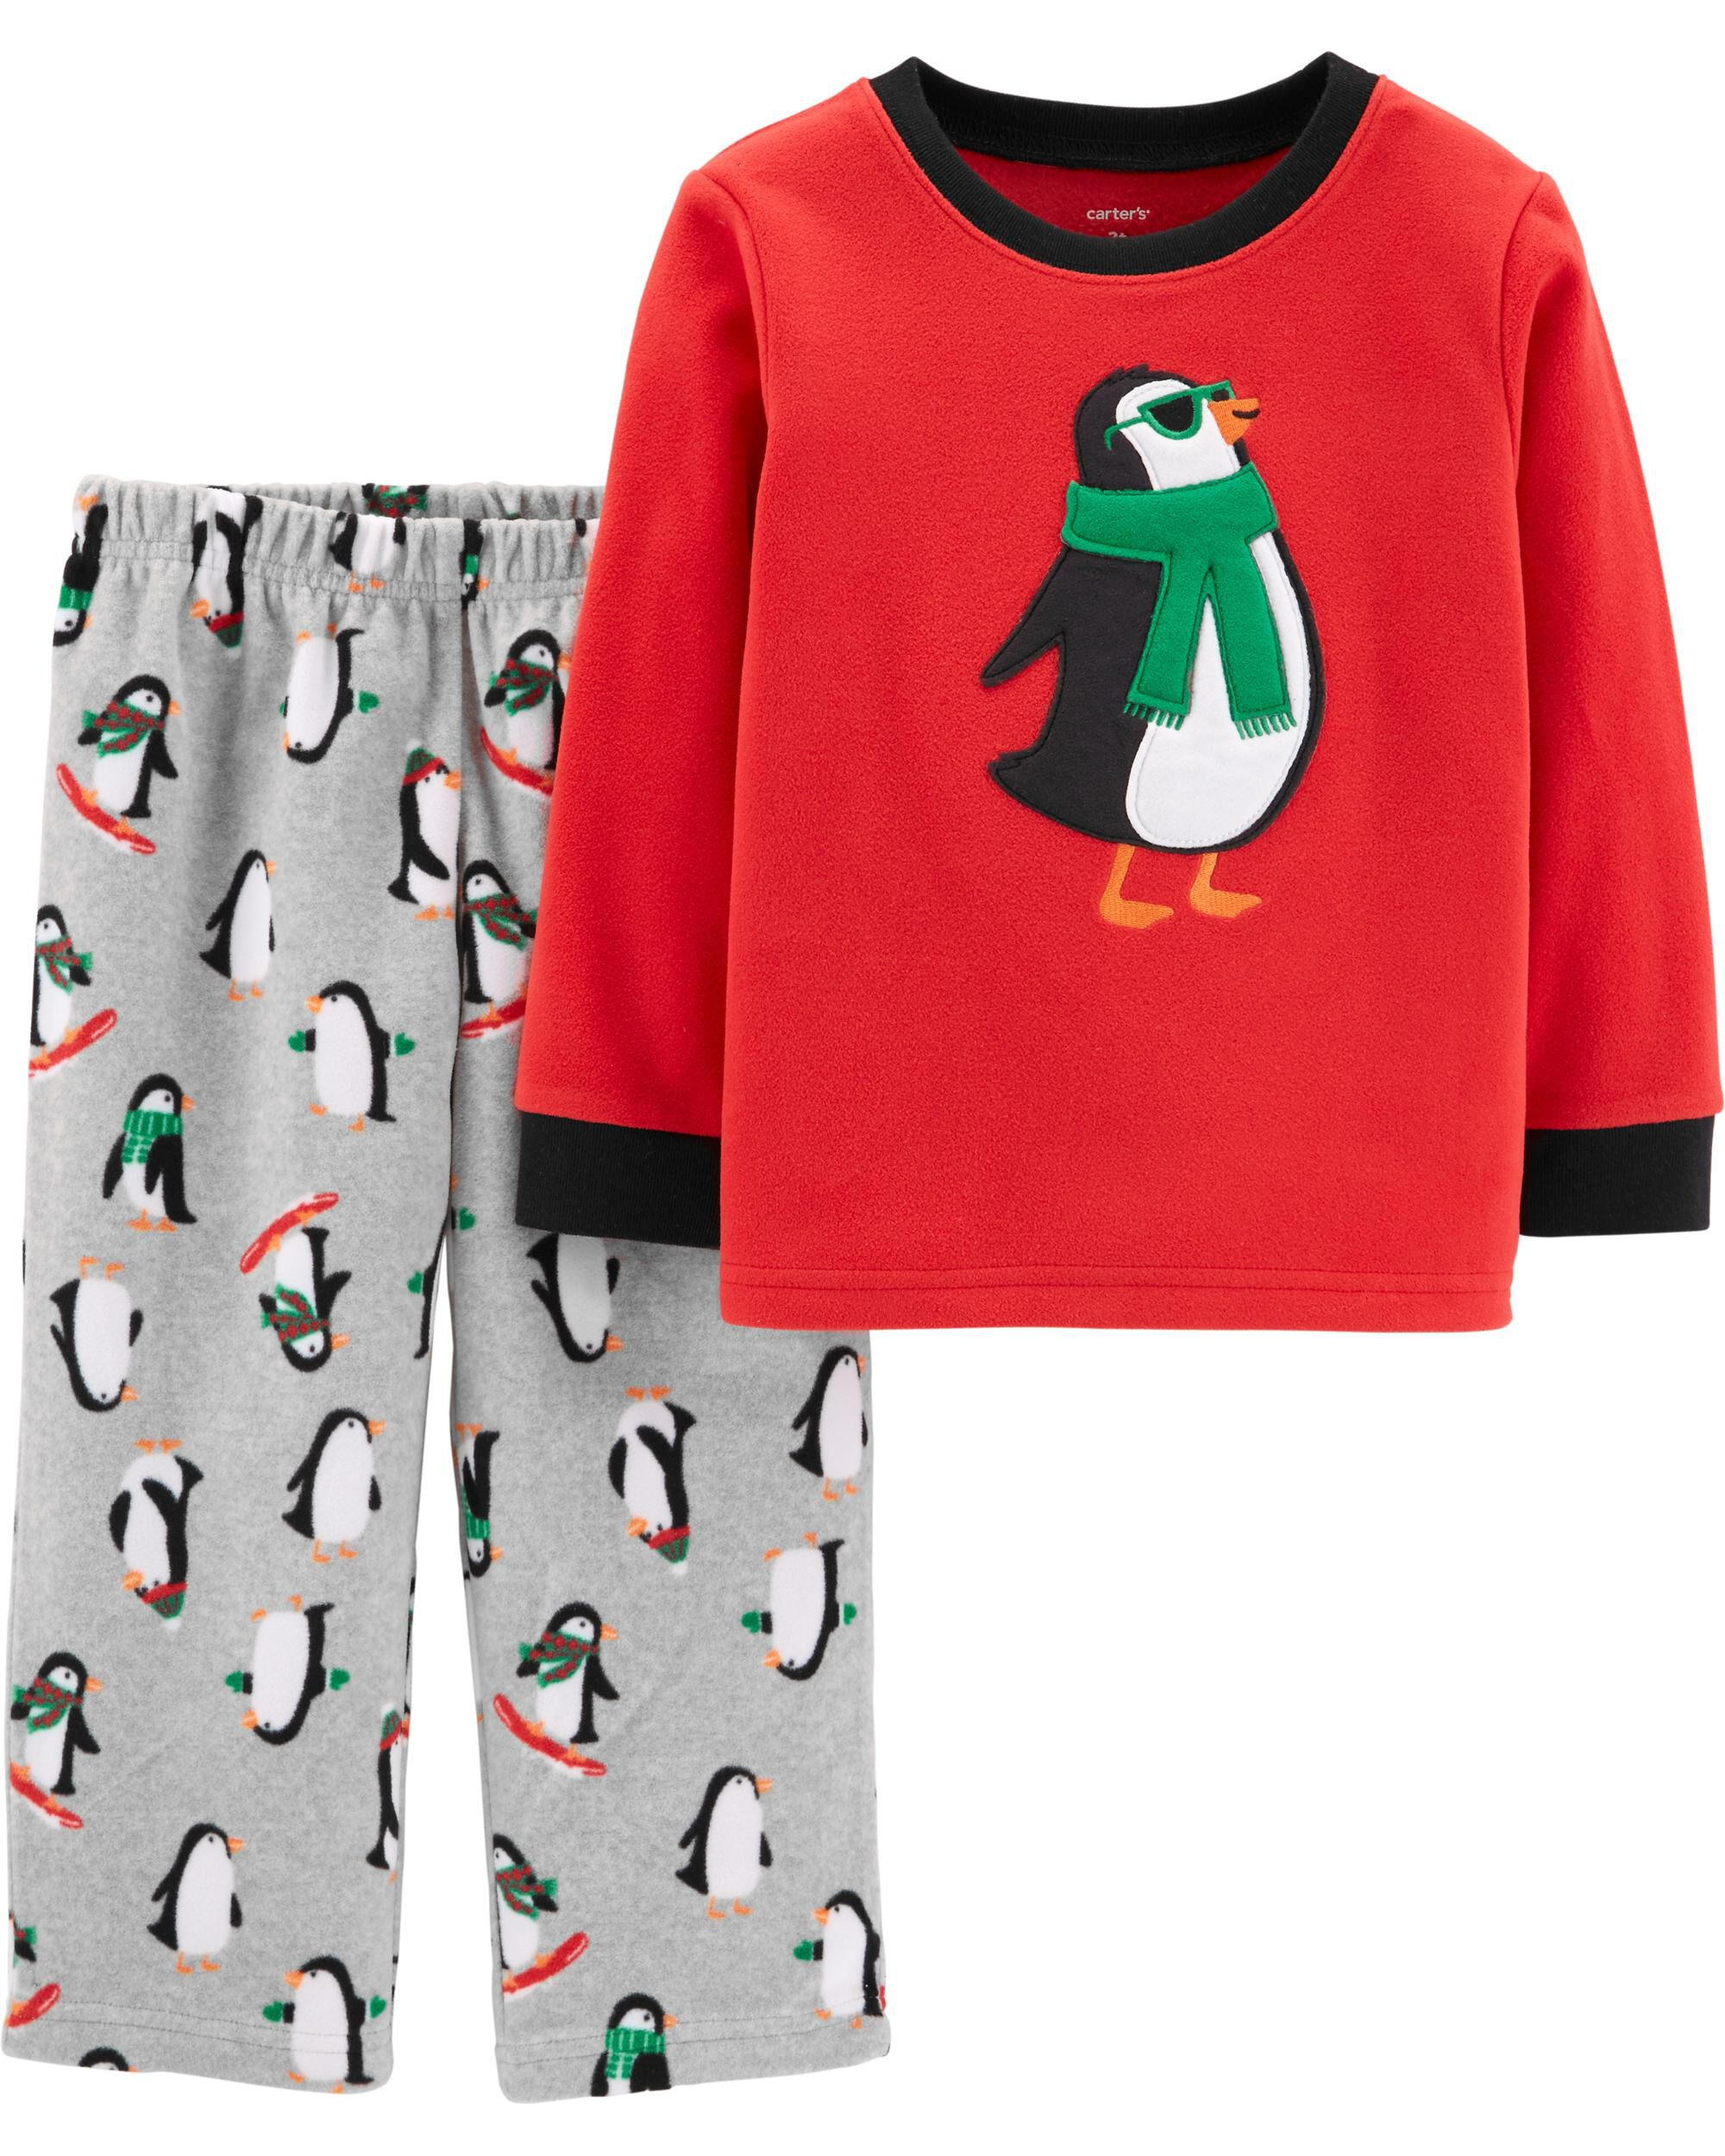 Carters Nwt 18 Months Santa Pink Tree Christmas Footed Fleece Pajama Girls Available In Various Designs And Specifications For Your Selection Girls' Clothing (newborn-5t) Clothing, Shoes & Accessories